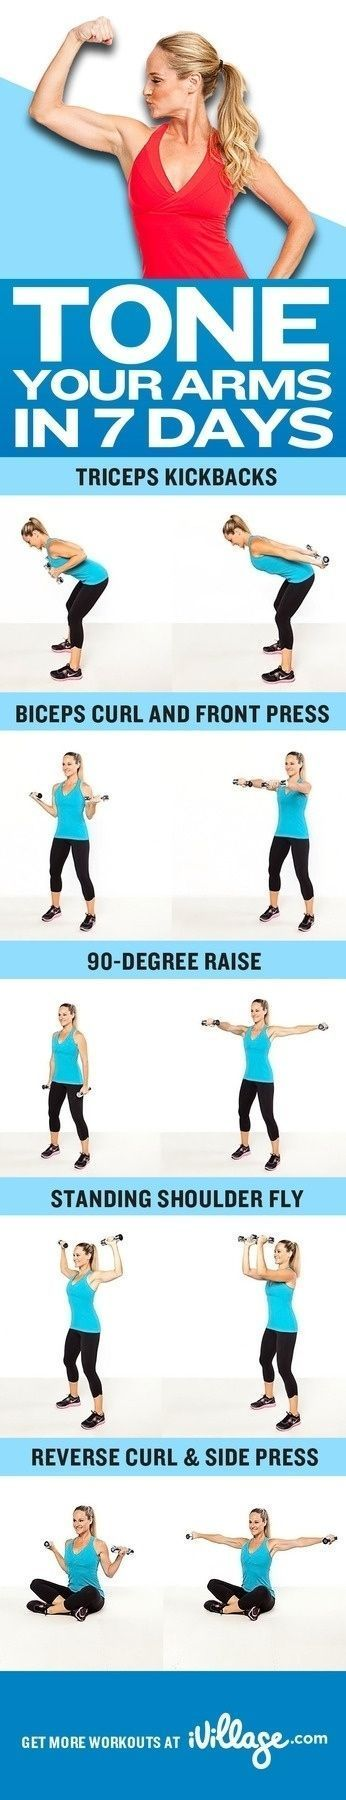 Fat burning workout before bed image 9